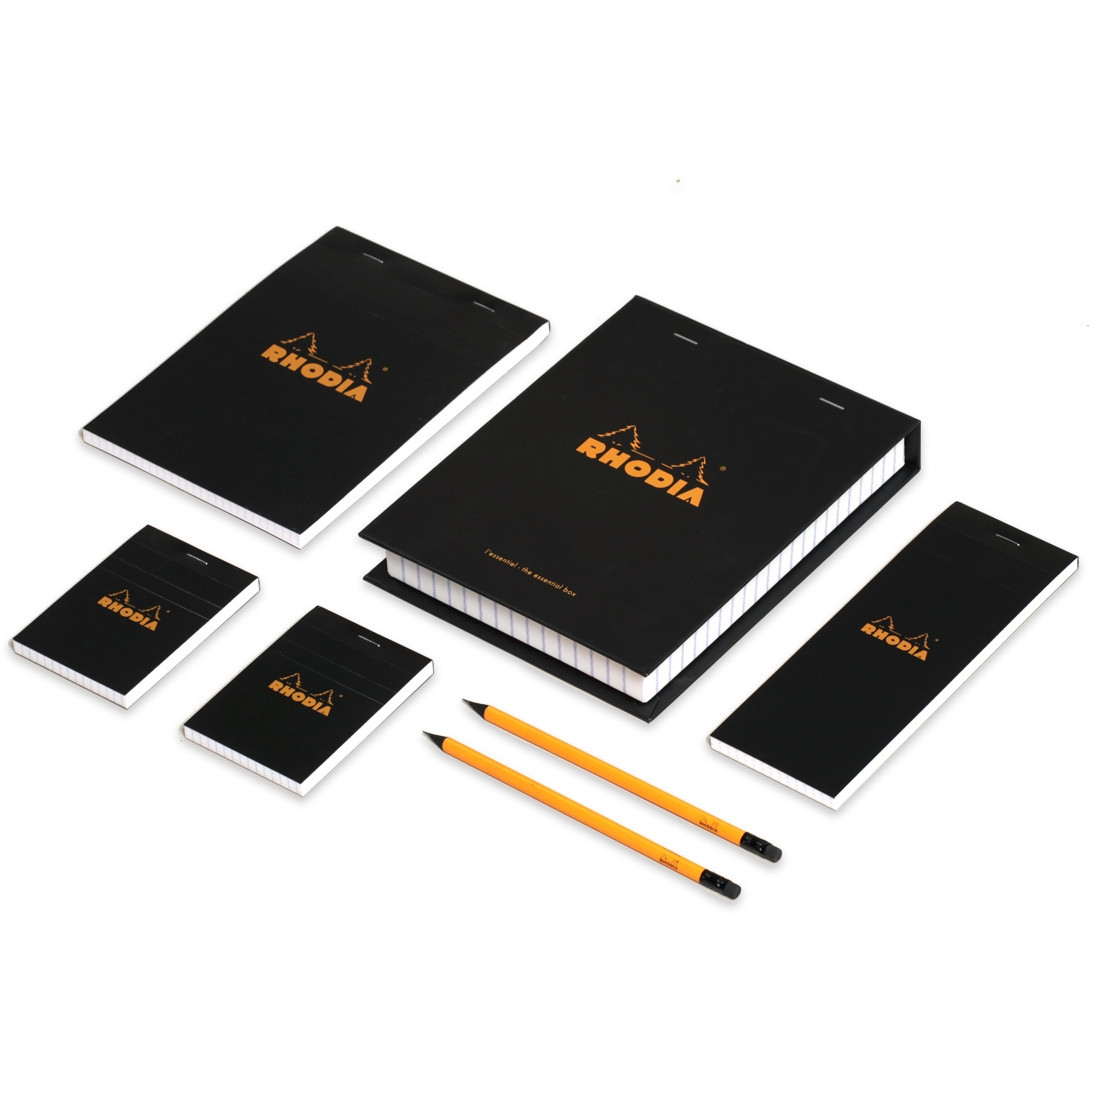 Rhodia Essential Treasure Box - 4 Assorted Notepads in an Executive Desk Set Box